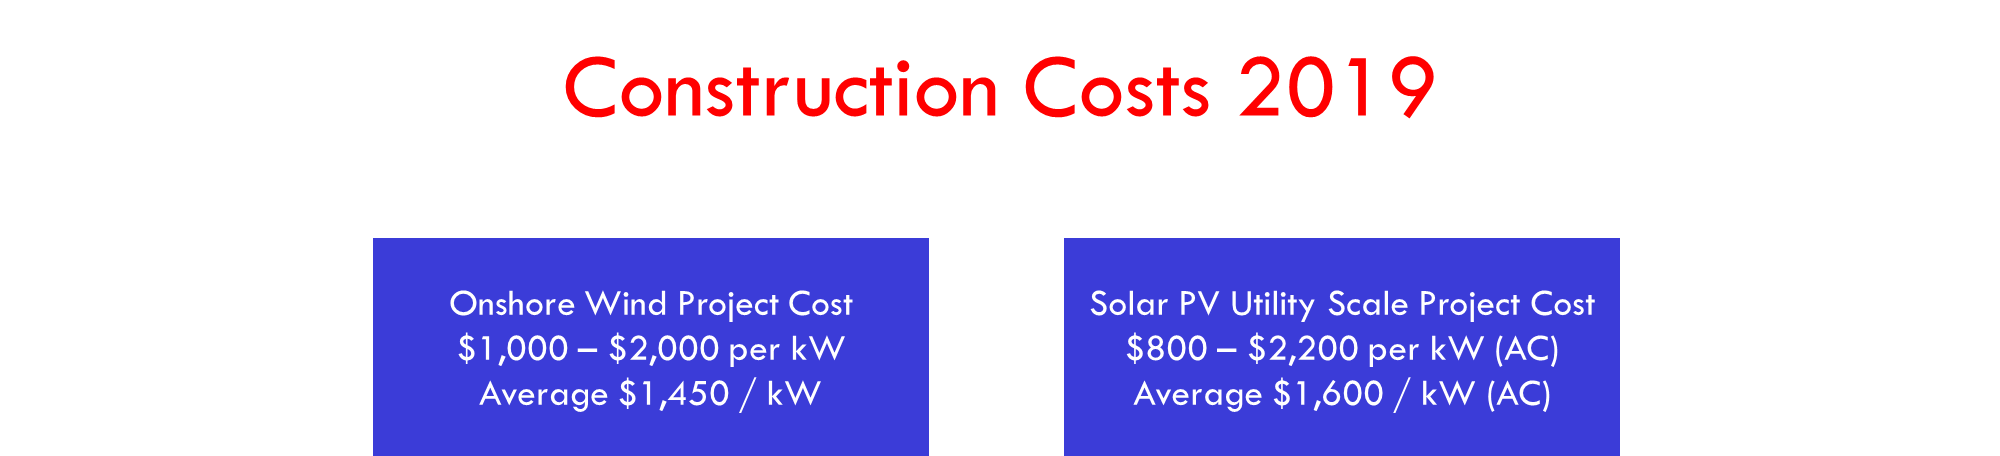 Wind and Solar Construction Costs